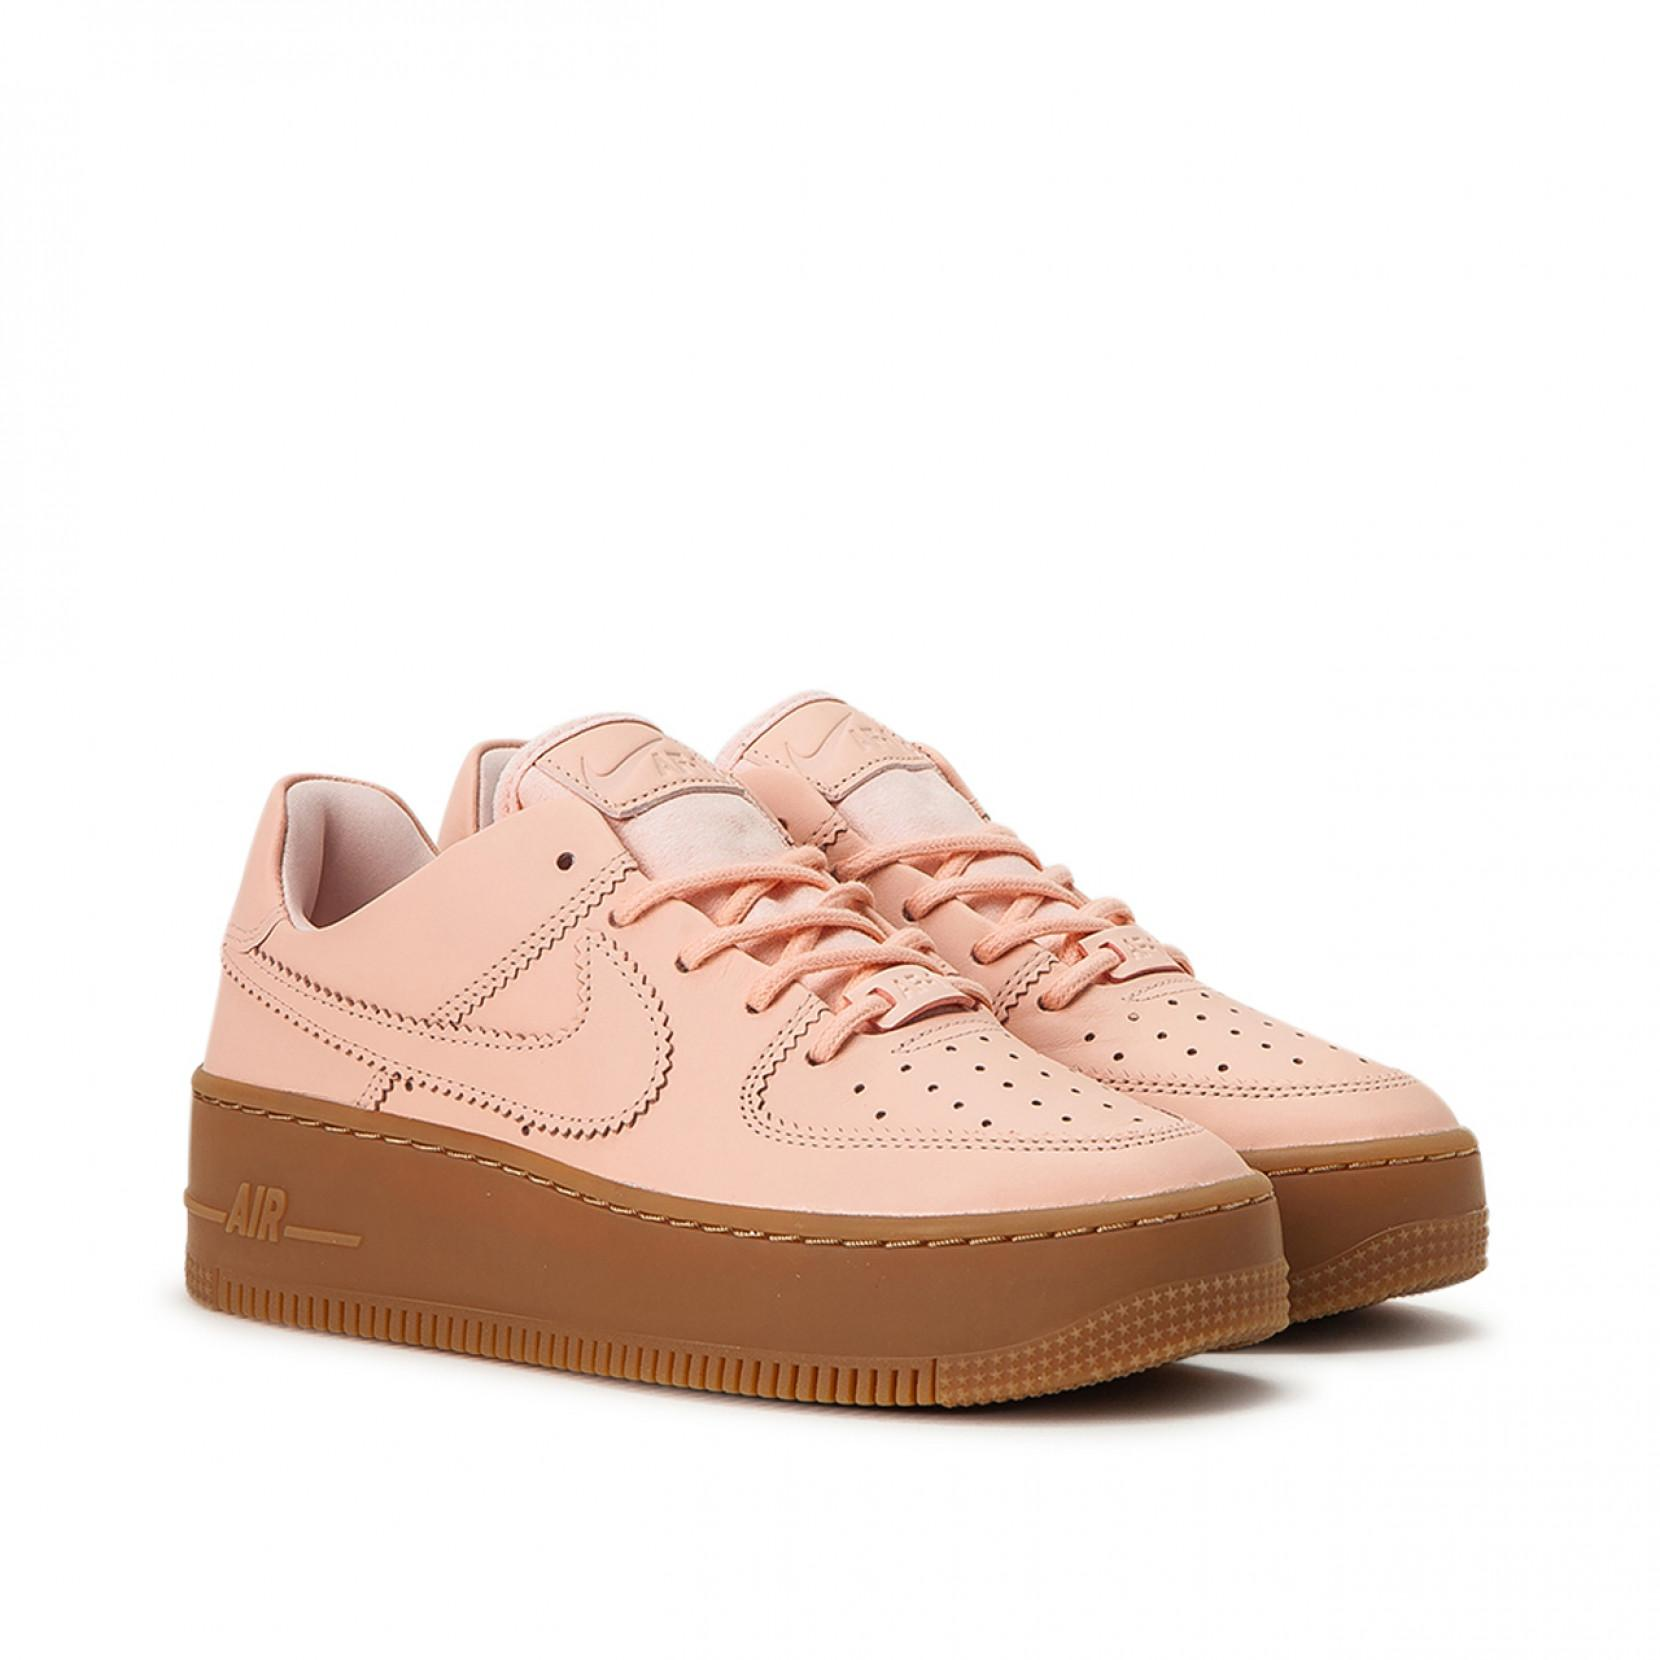 Nike W Af1 Sage Low Lx Basketball Shoes in Rose (Pink) - Lyst